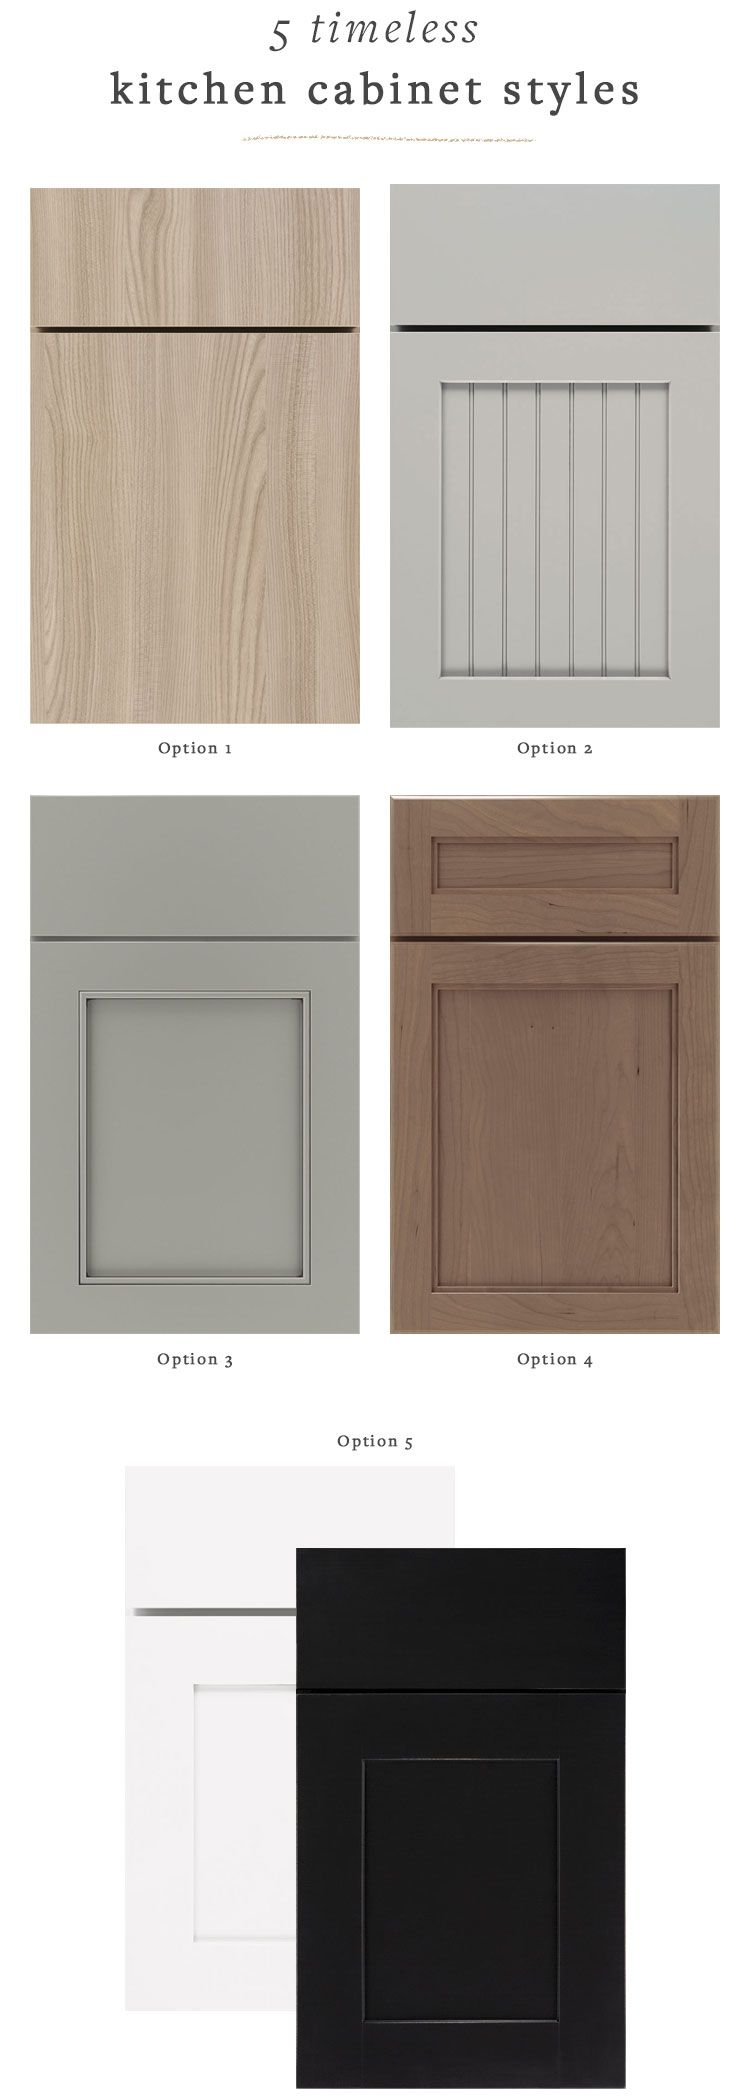 Our Renovation Kitchen Cabinet Door Styles That Will Never Go Out